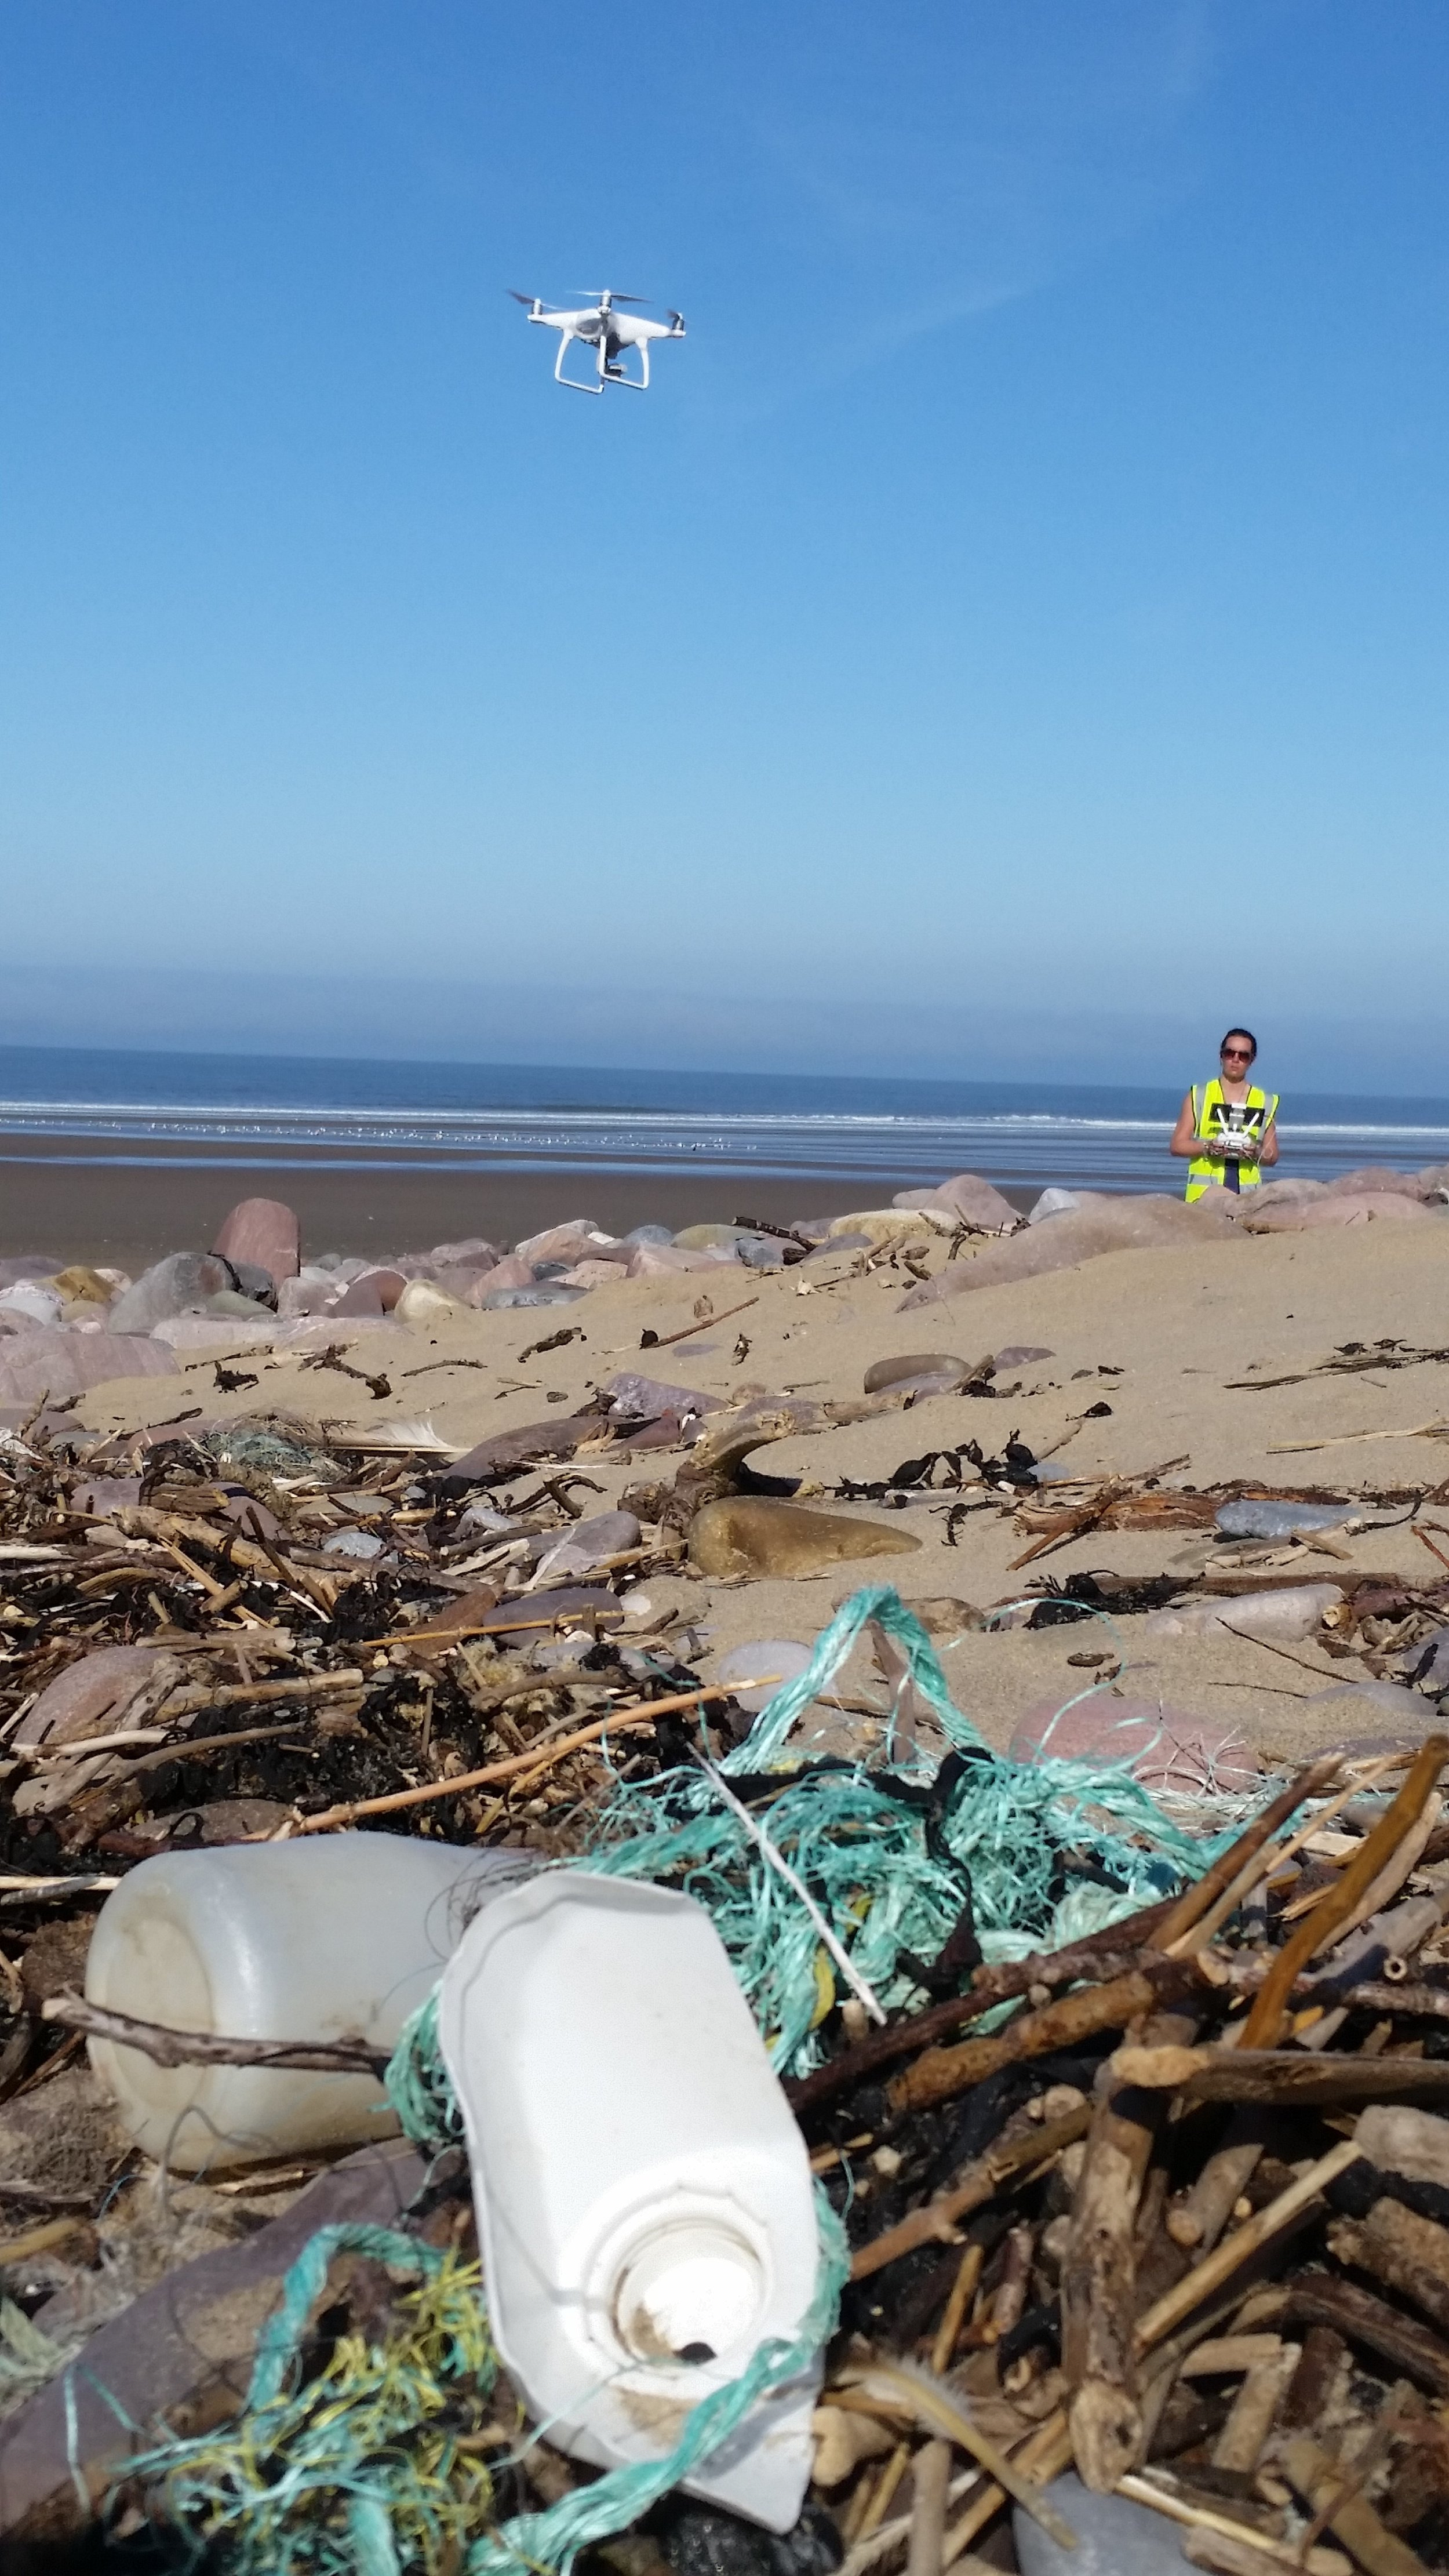 Ellie getting to work surveying the piles of litter on Rhossili beach